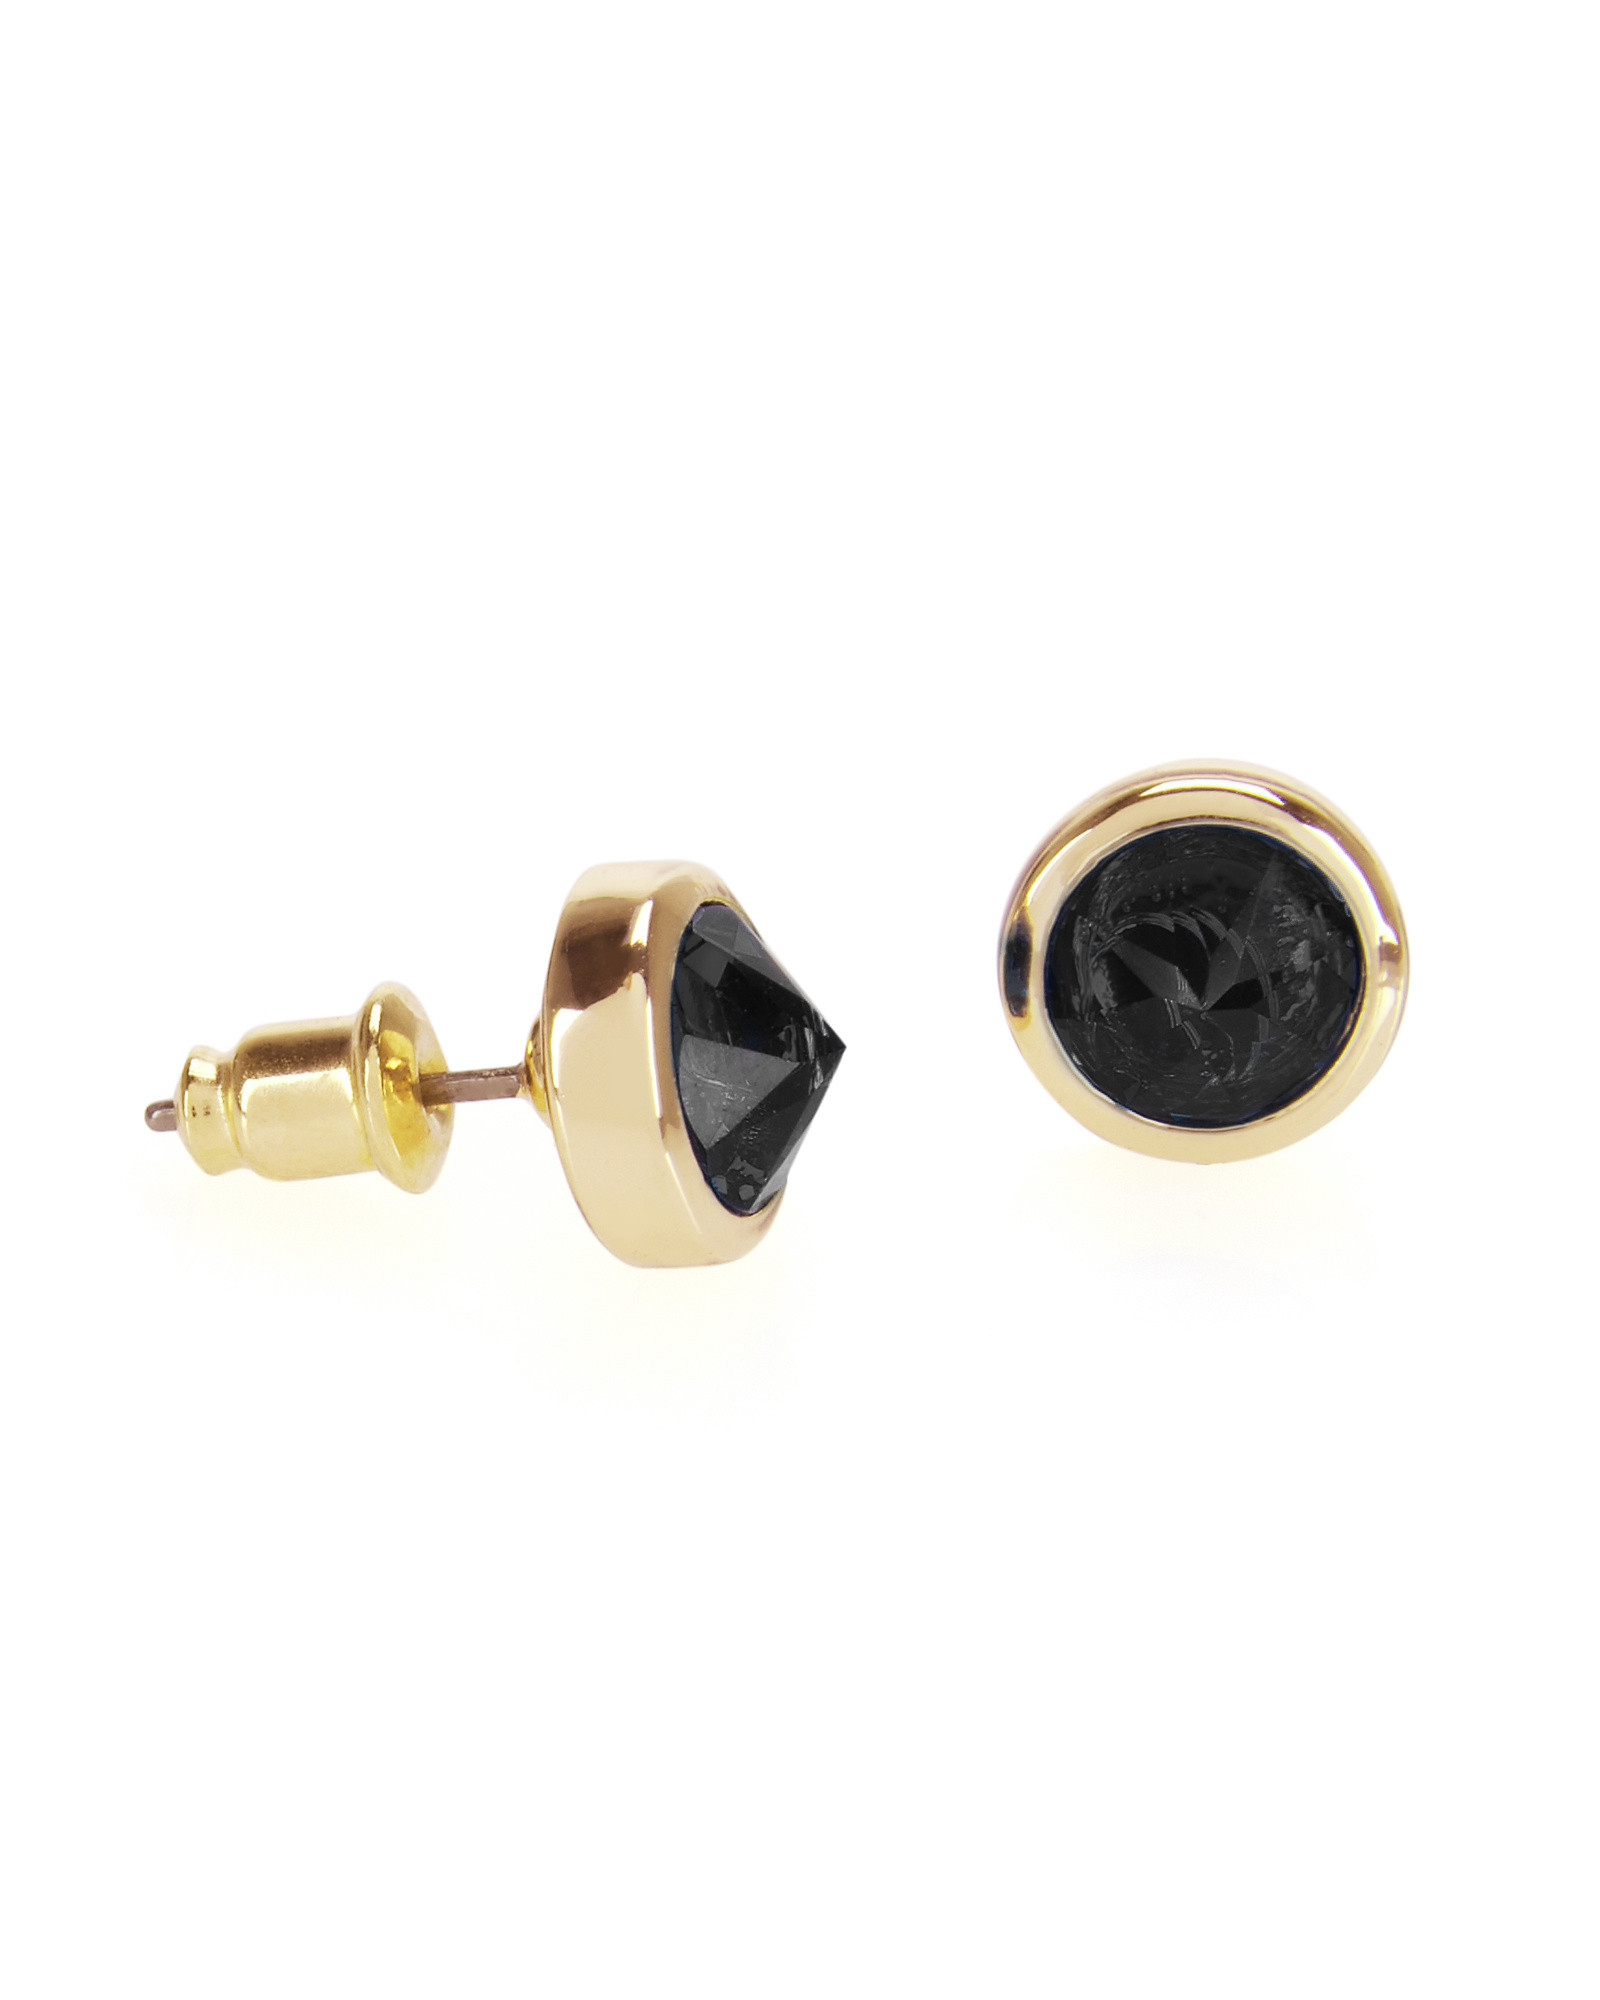 swan metal stud chanel l swarovski cc earrings black crystal with iconic